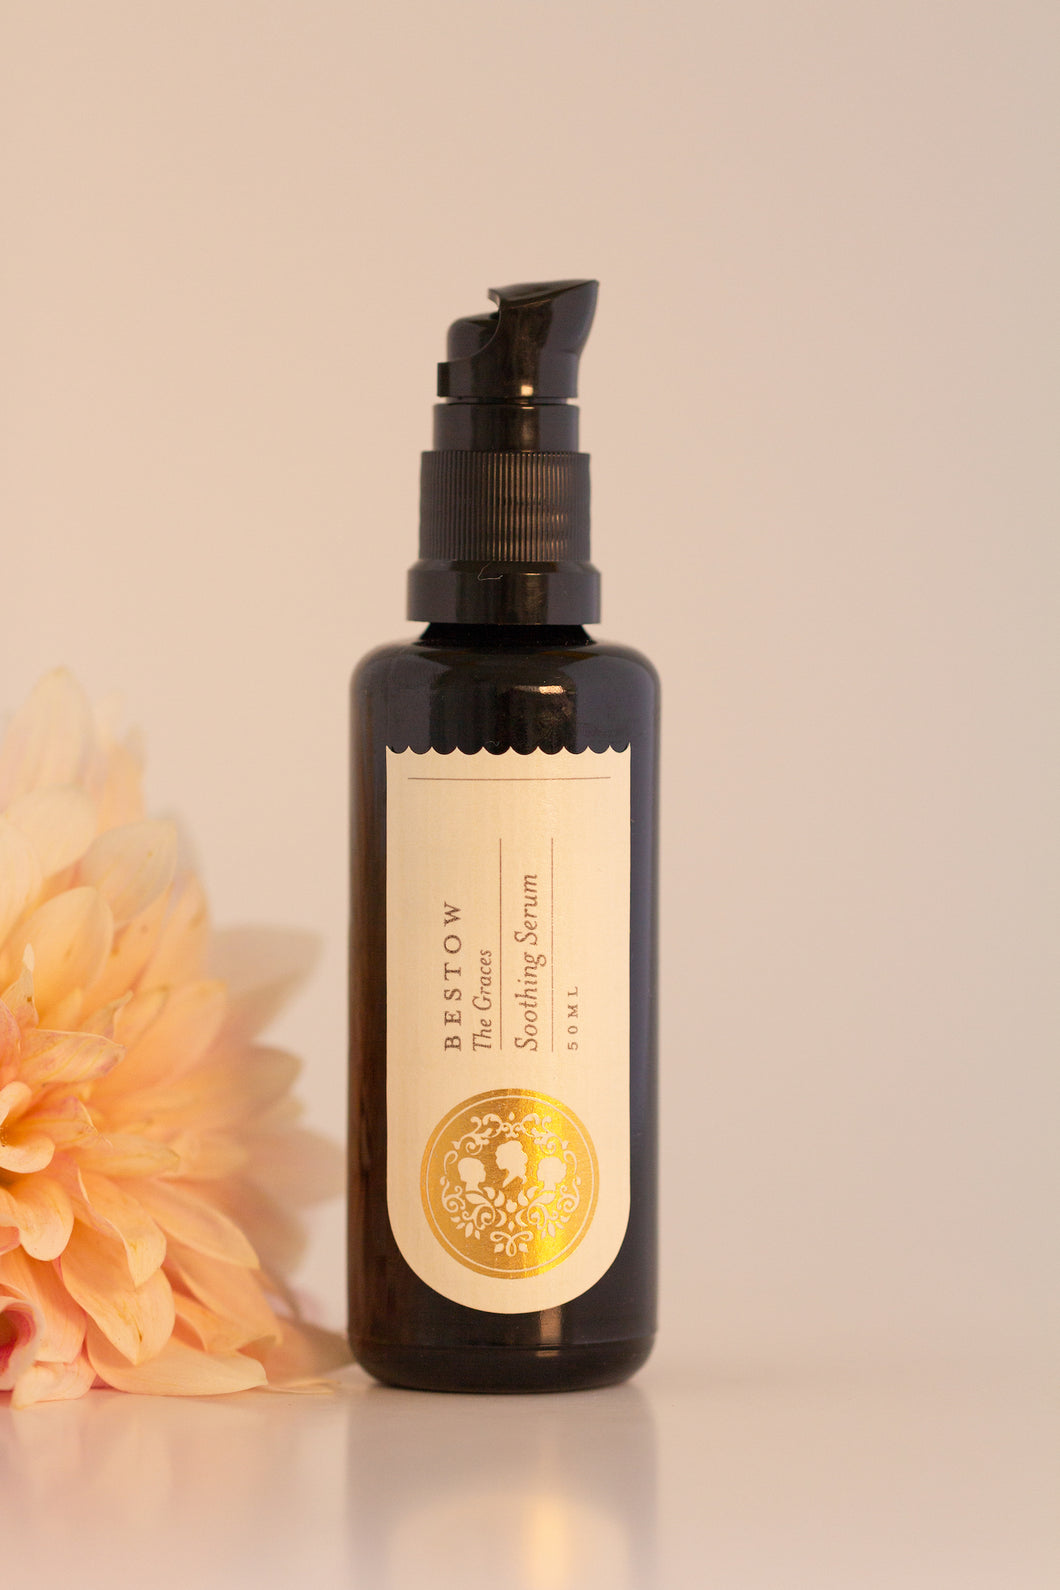 Bestow Graces Soothing Serum